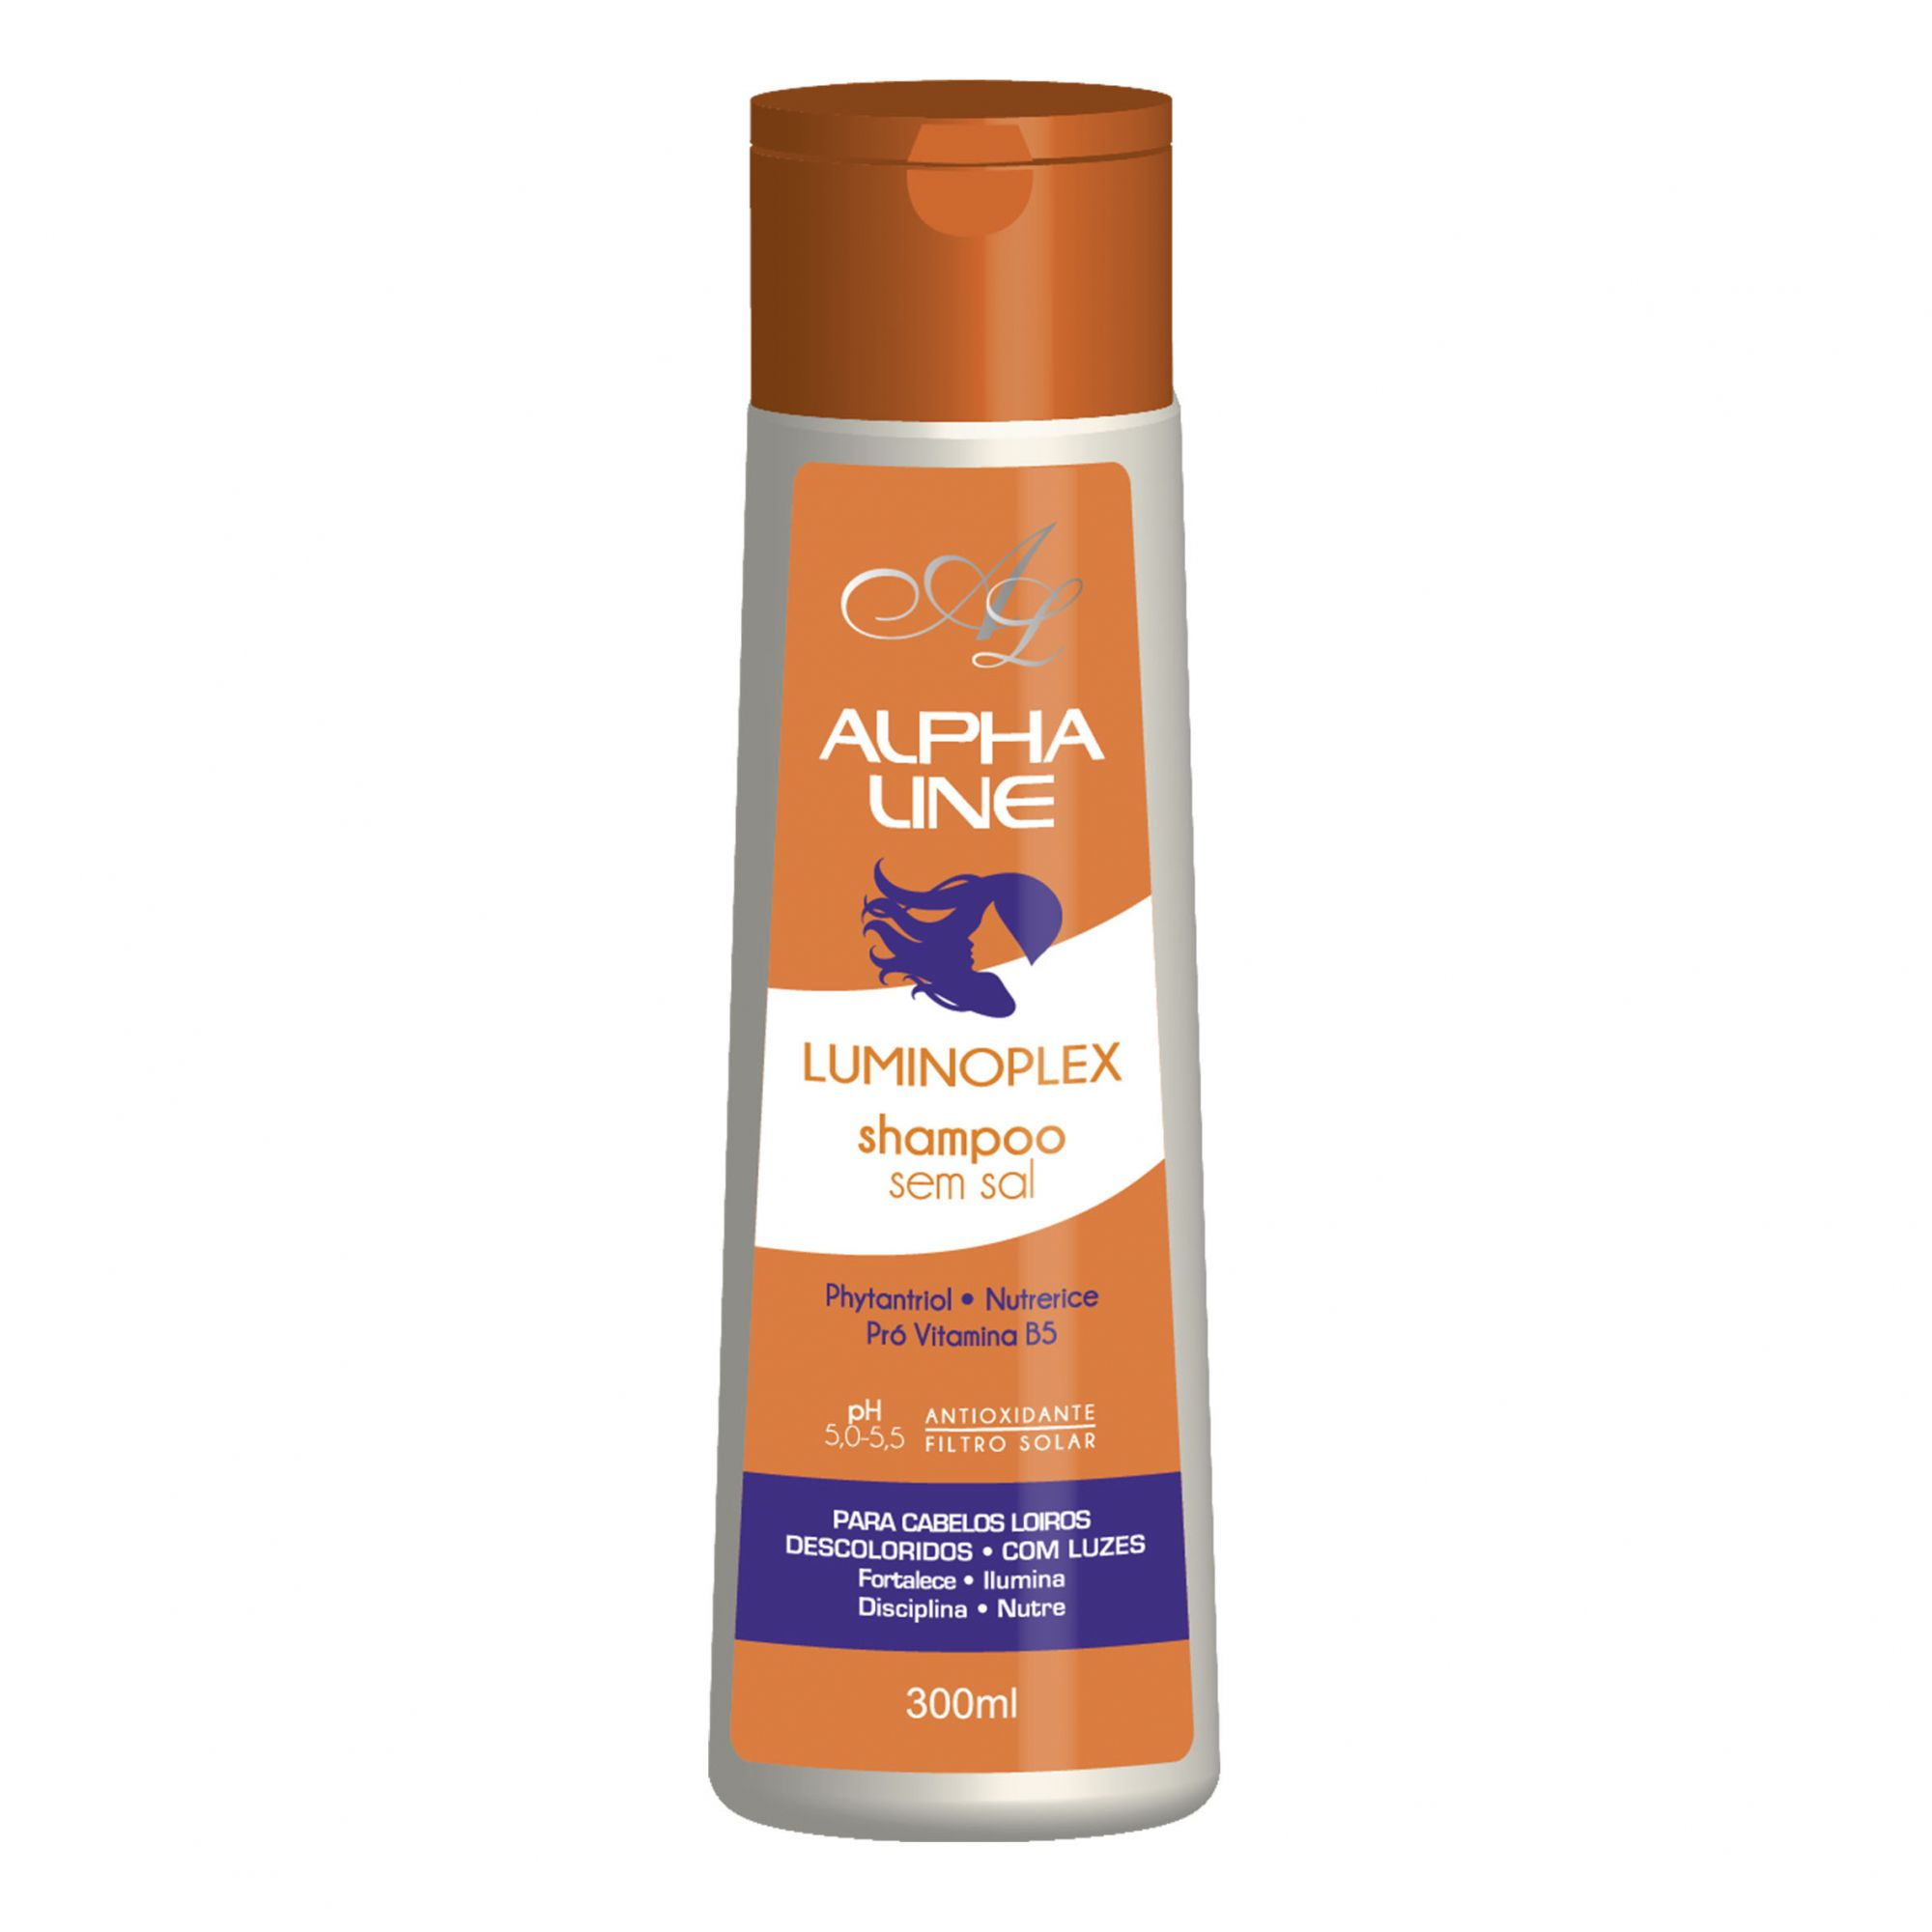 Luminoplex Shampoo 300ml Alpha Line